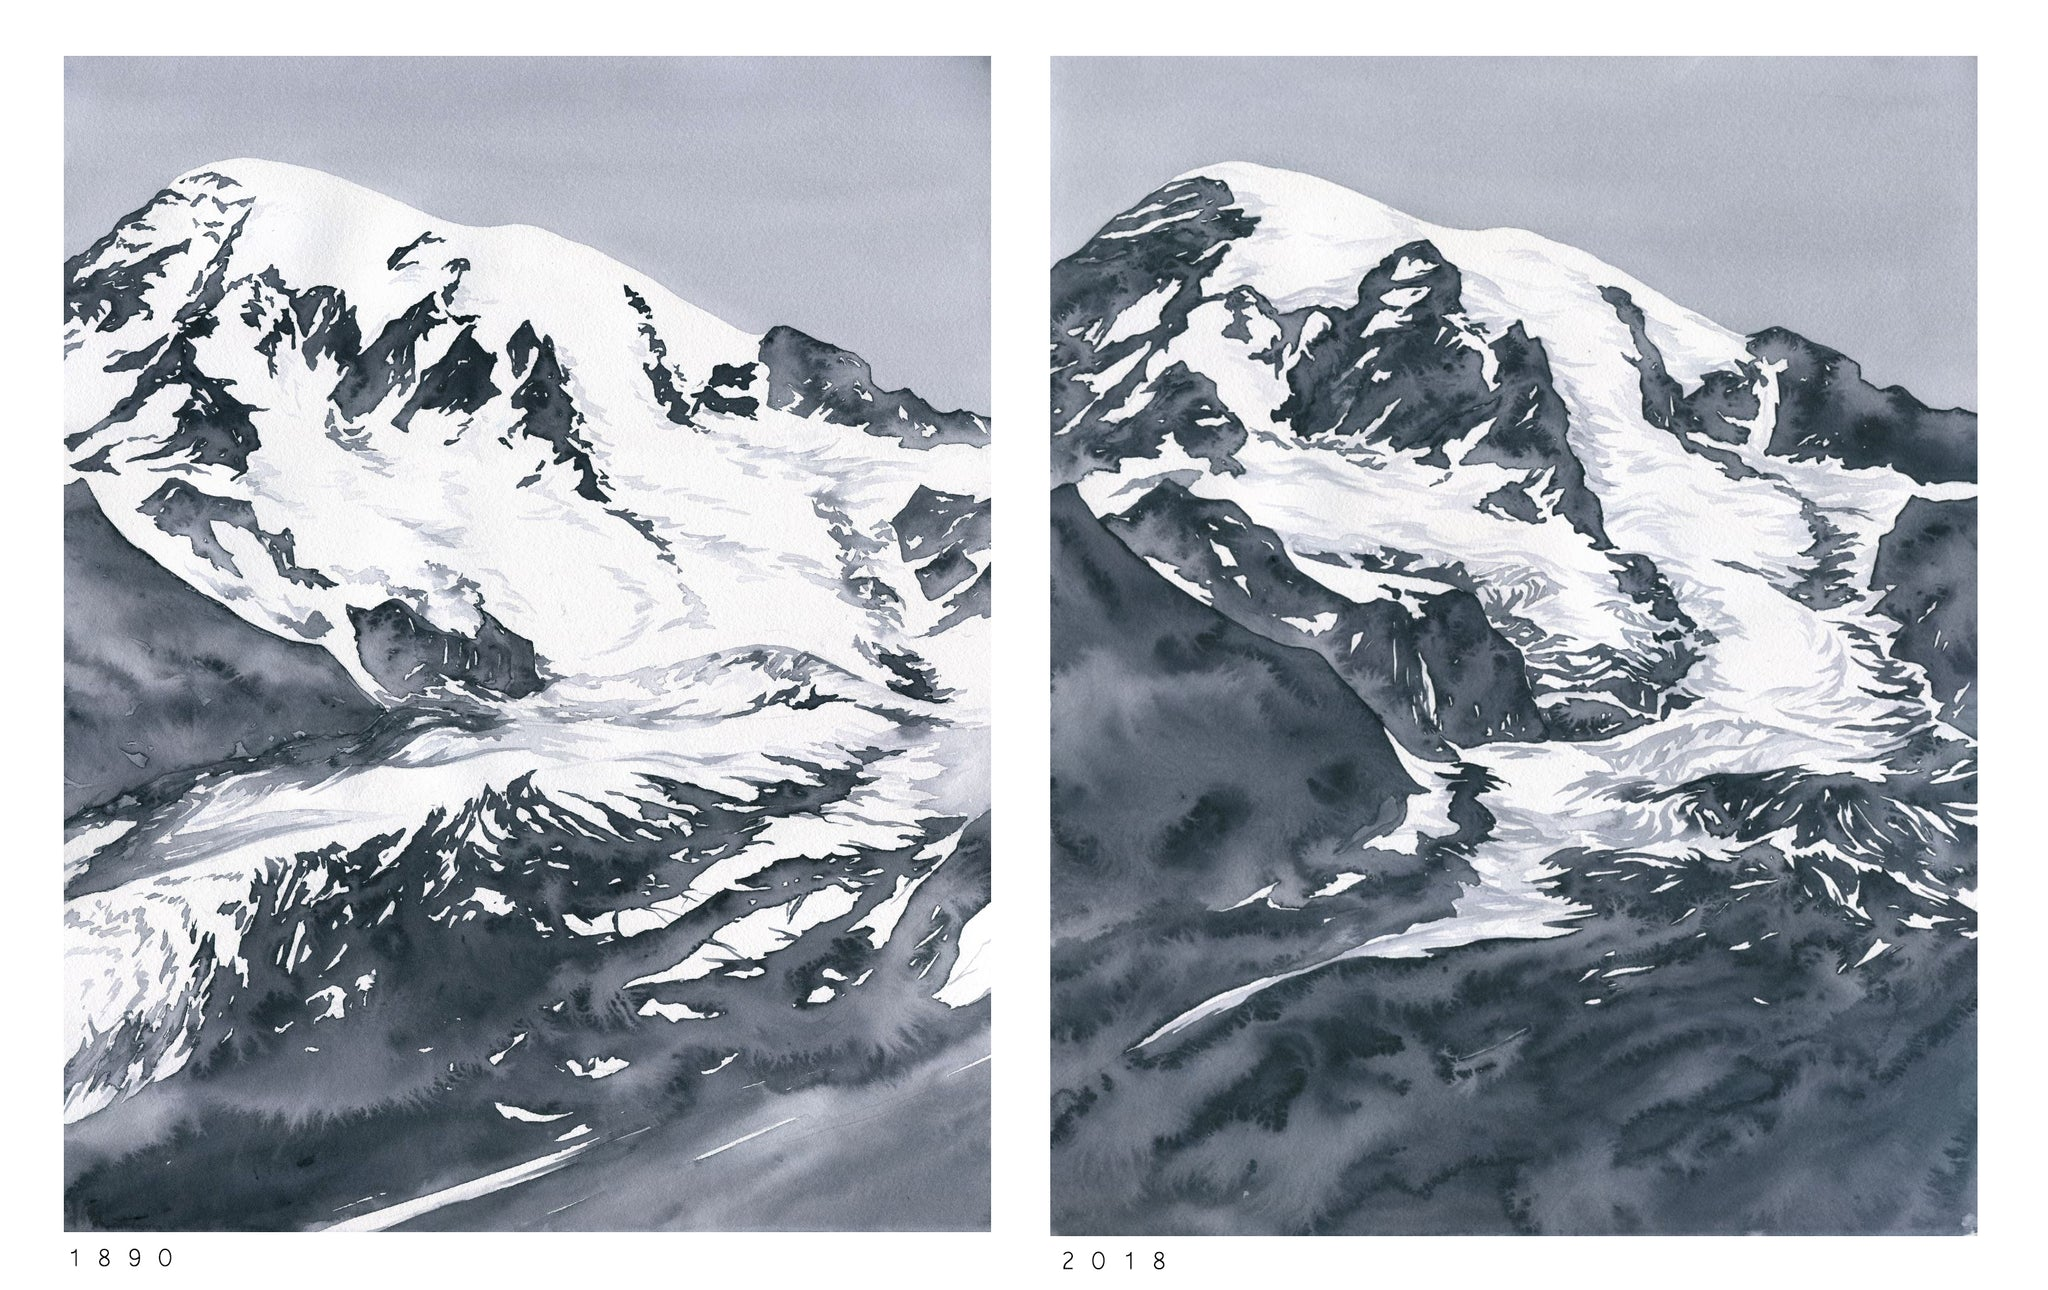 Nisqually Glacier comparison